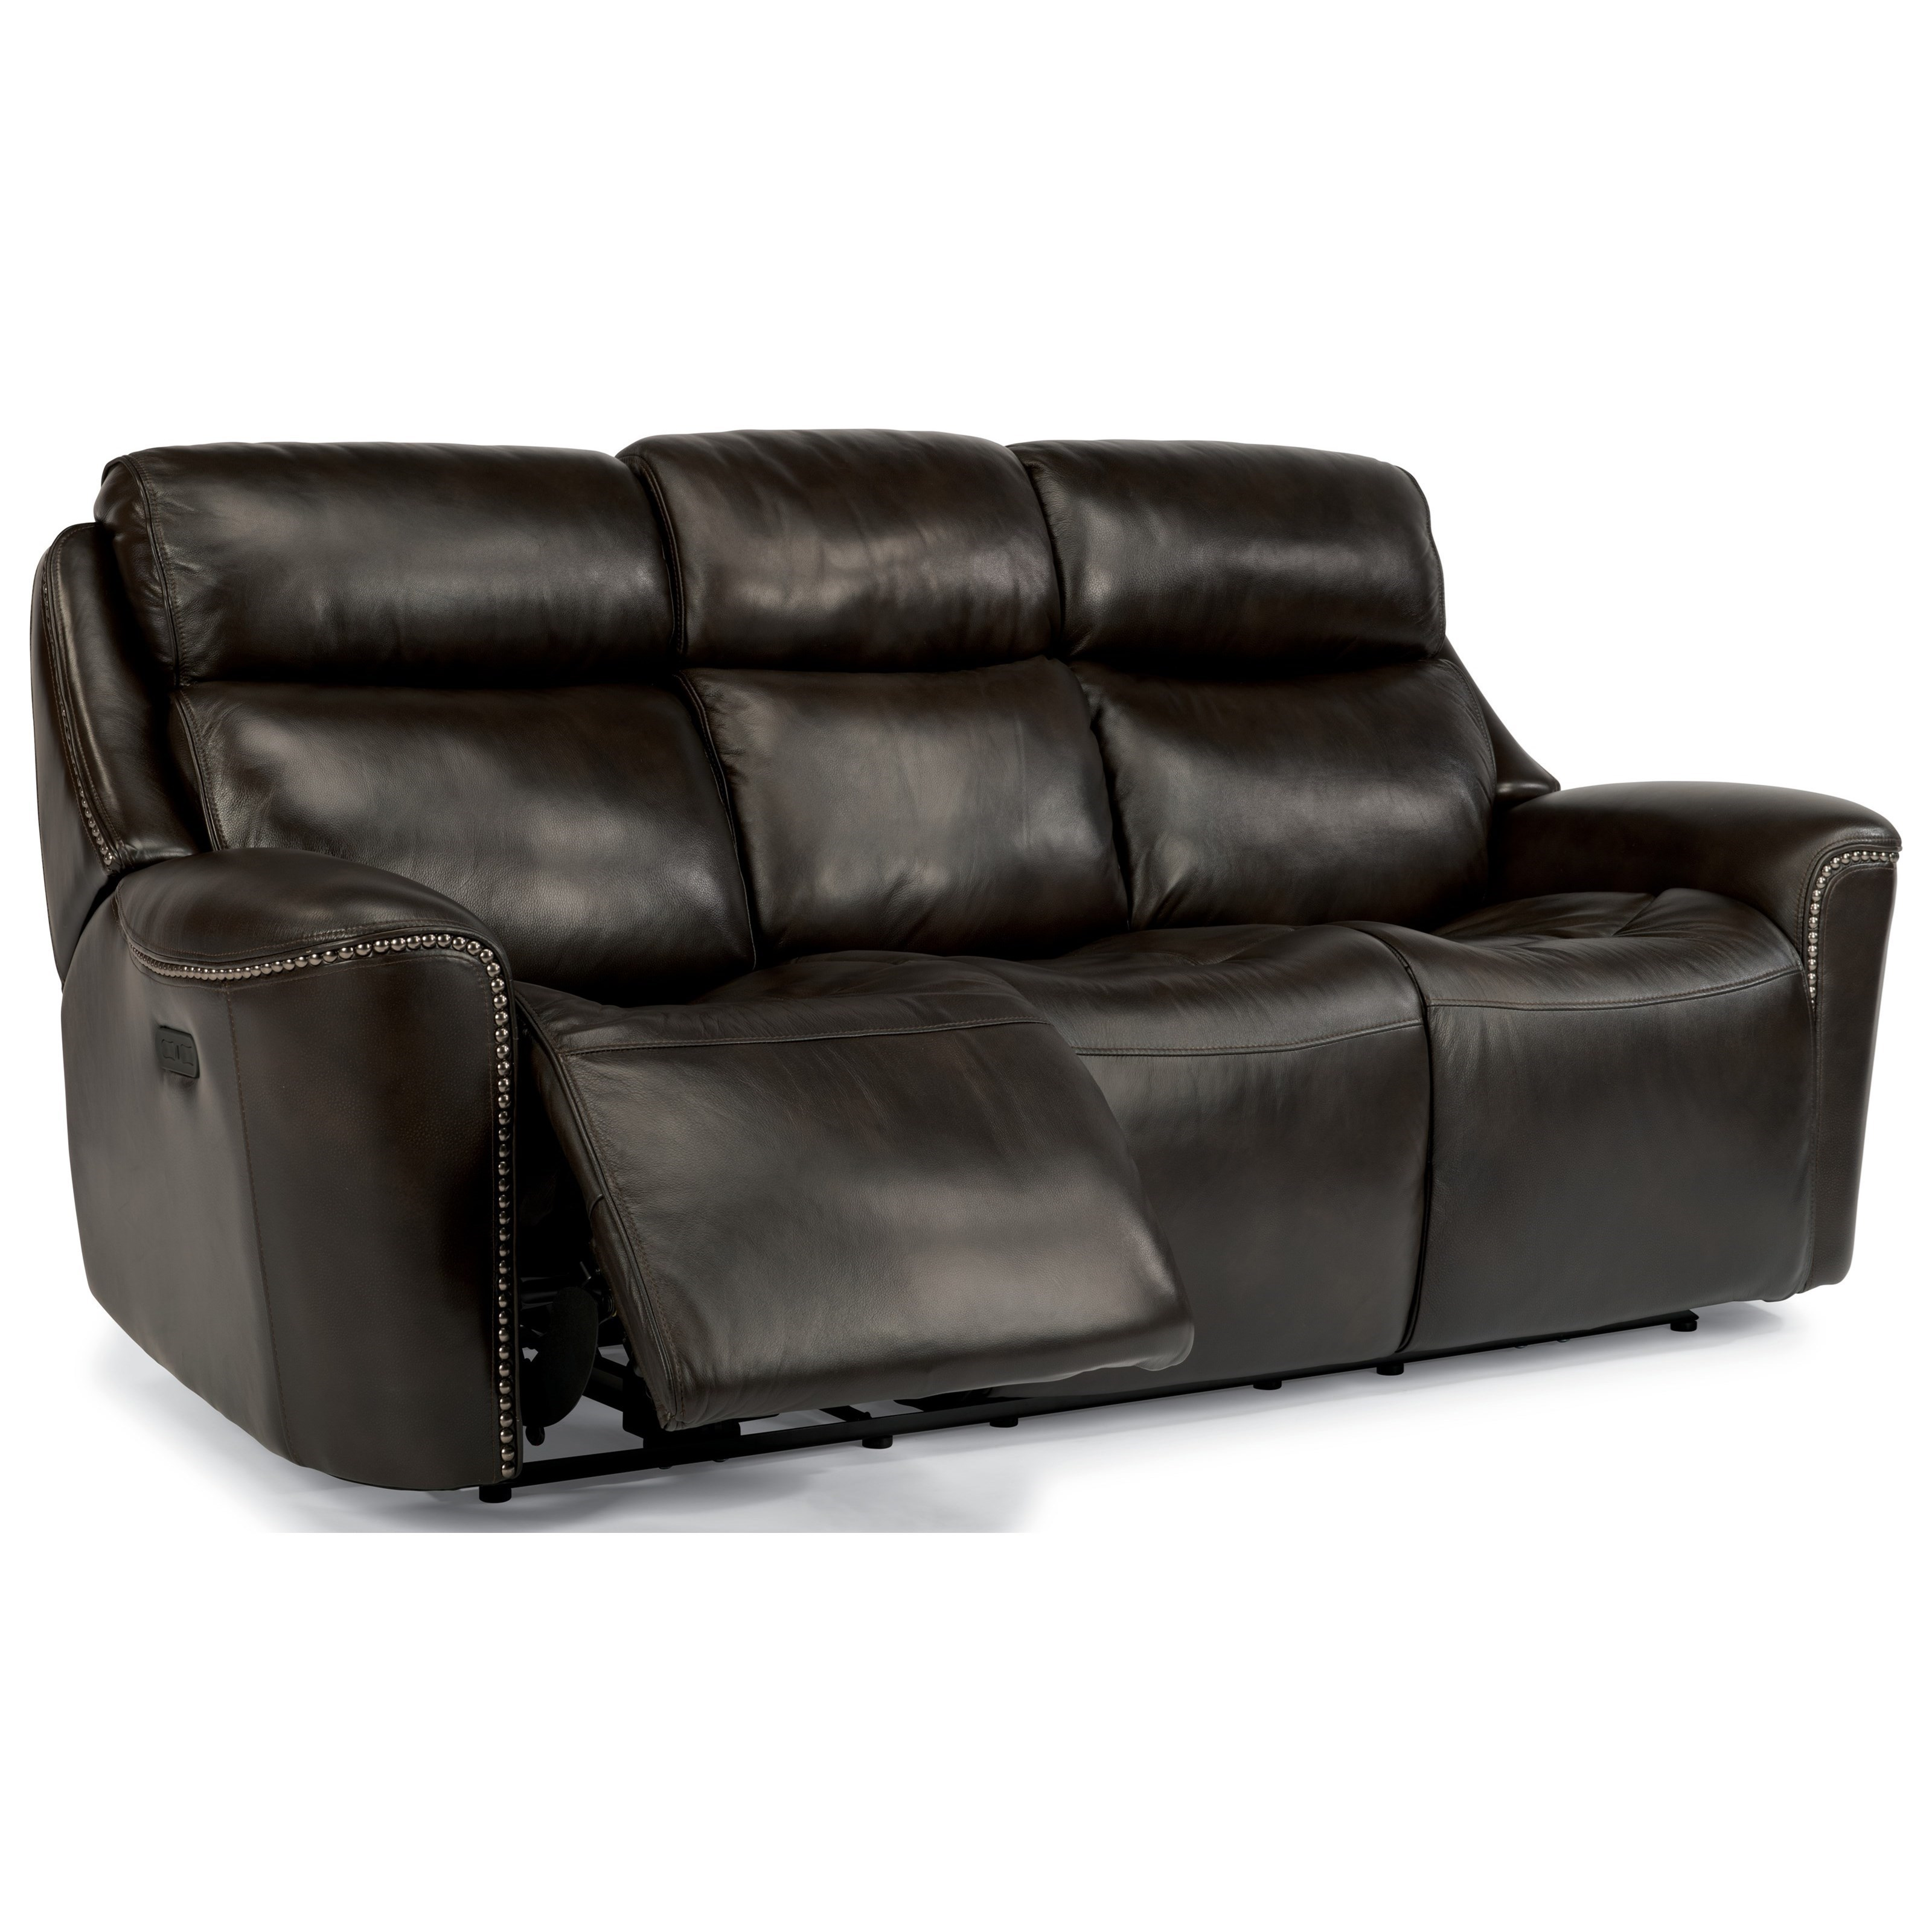 Flexsteel Latitudes-Mystic Power Reclining Sofa with Adjustable Headrest and USB Ports - Dunk u0026 Bright Furniture - Reclining Sofa  sc 1 st  Dunk u0026 Bright Furniture & Flexsteel Latitudes-Mystic Power Reclining Sofa with Adjustable ... islam-shia.org